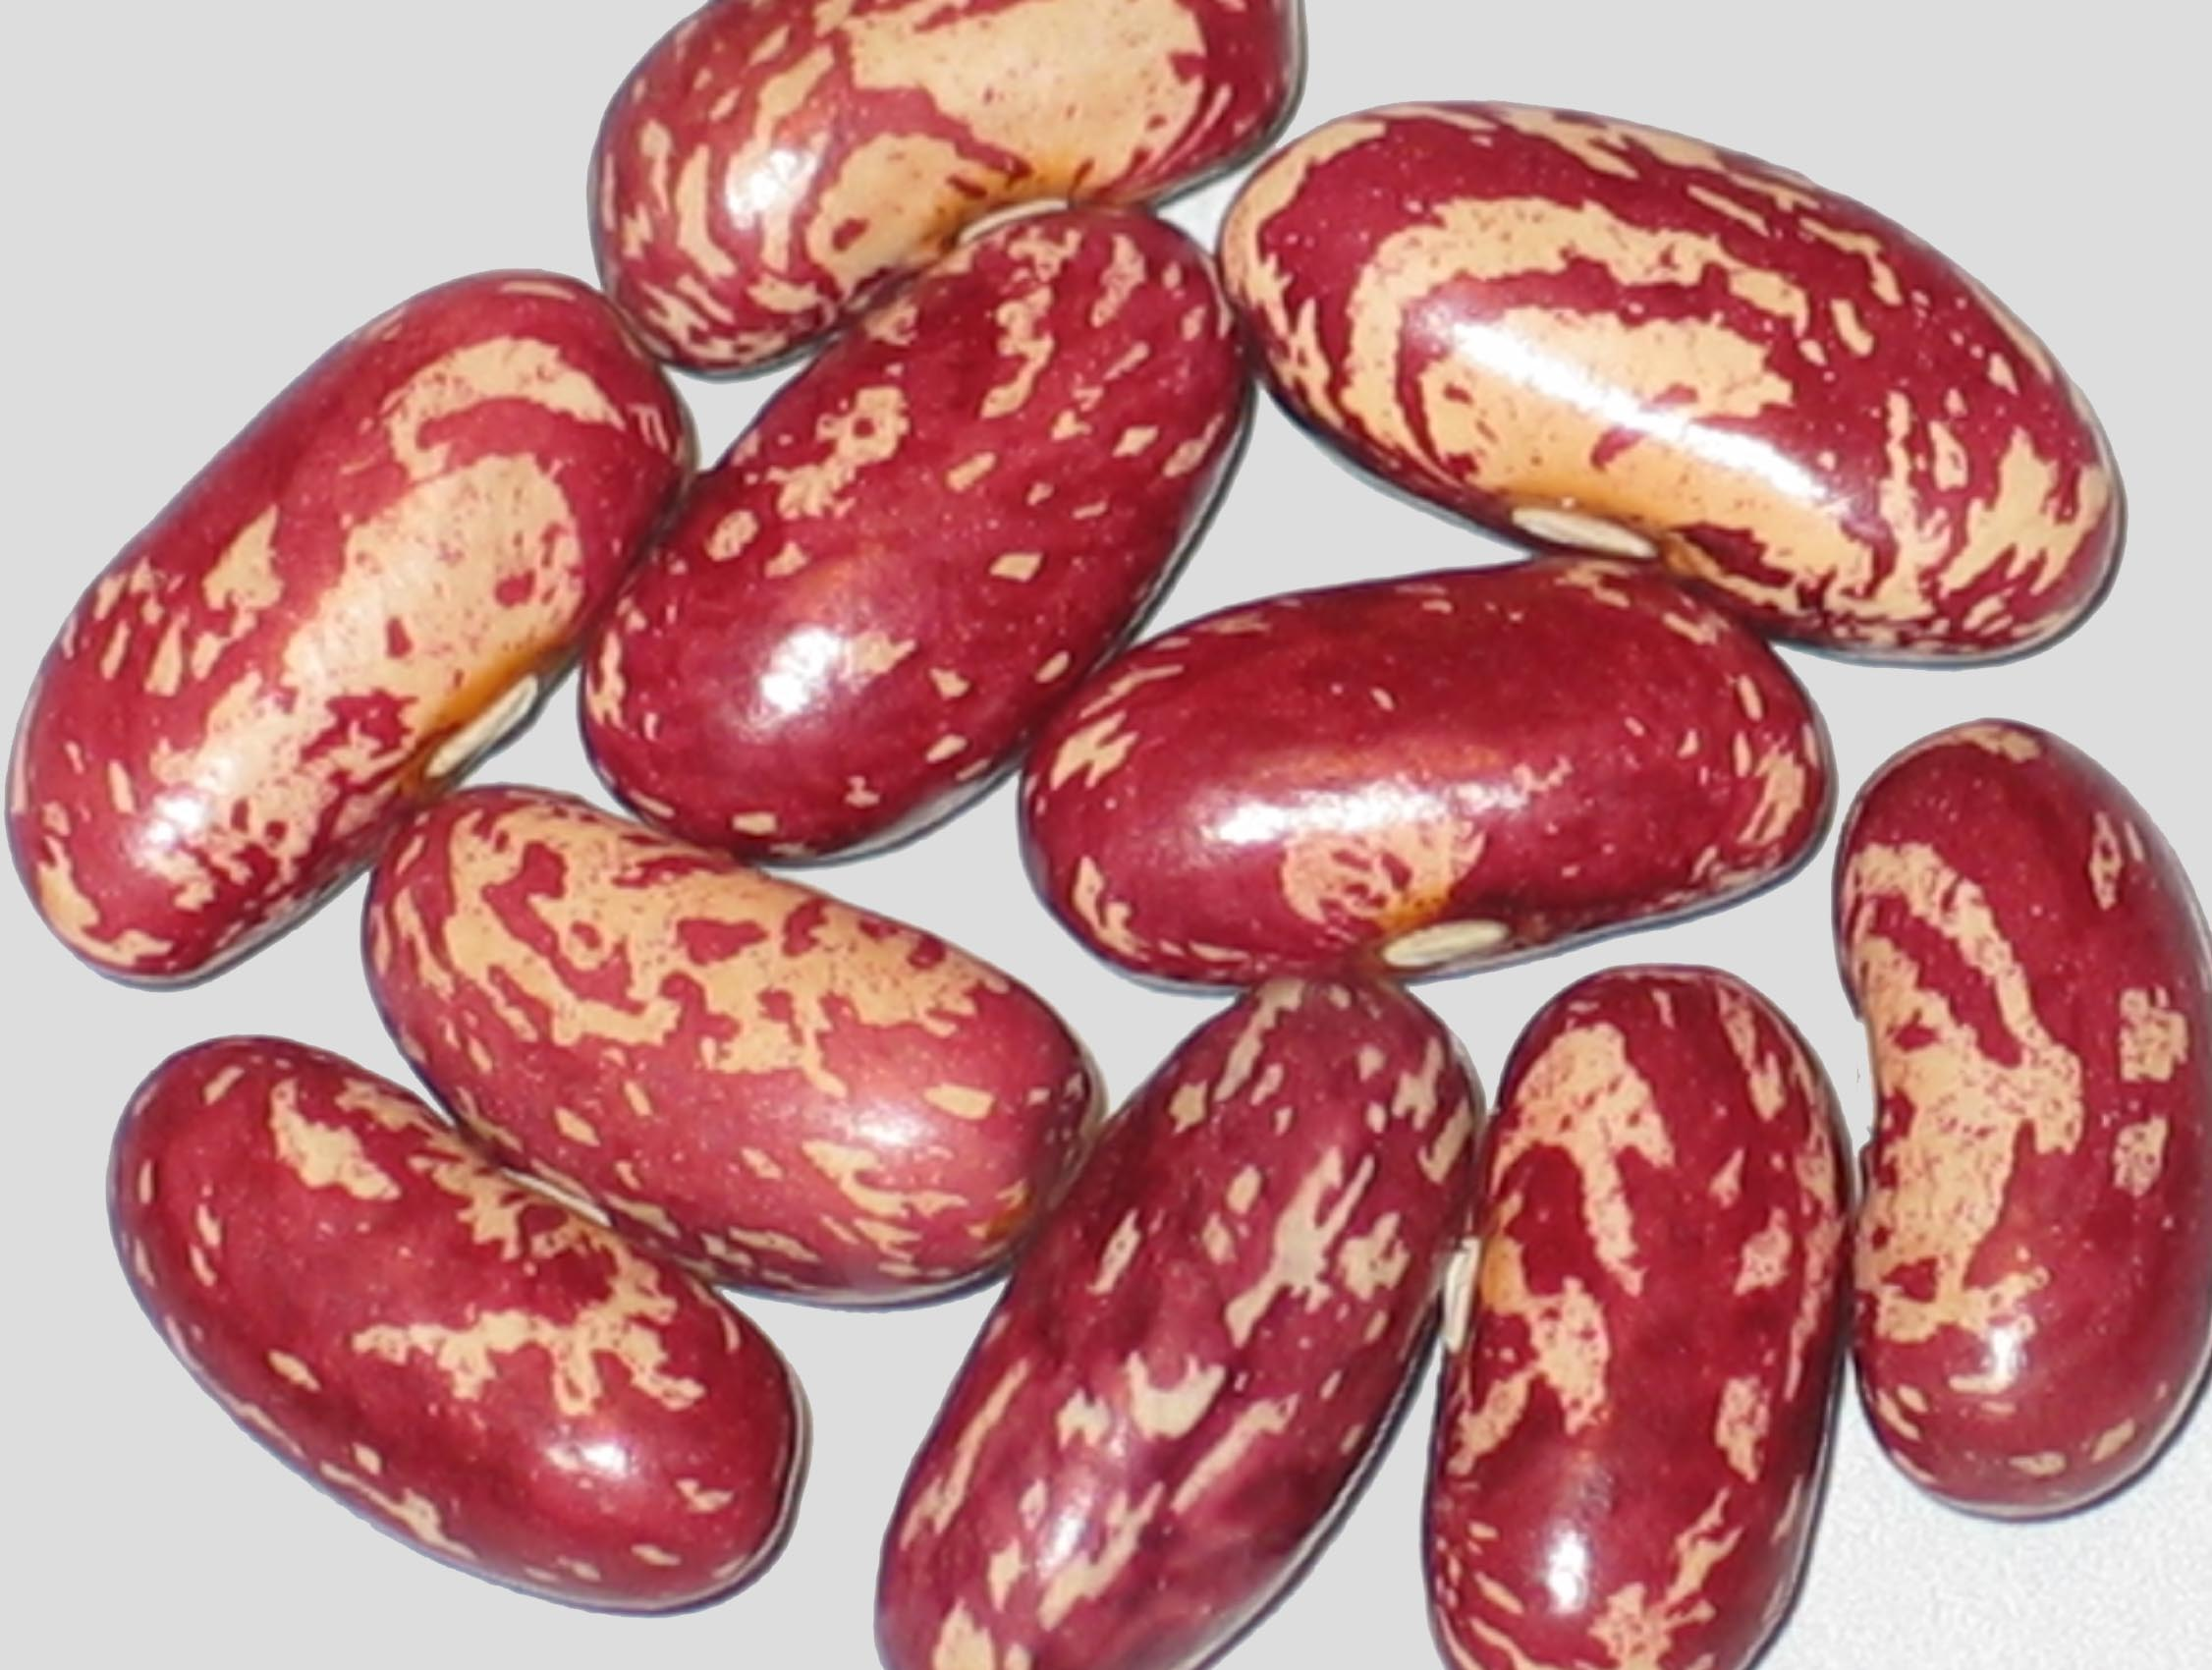 image of Hodson Wax beans